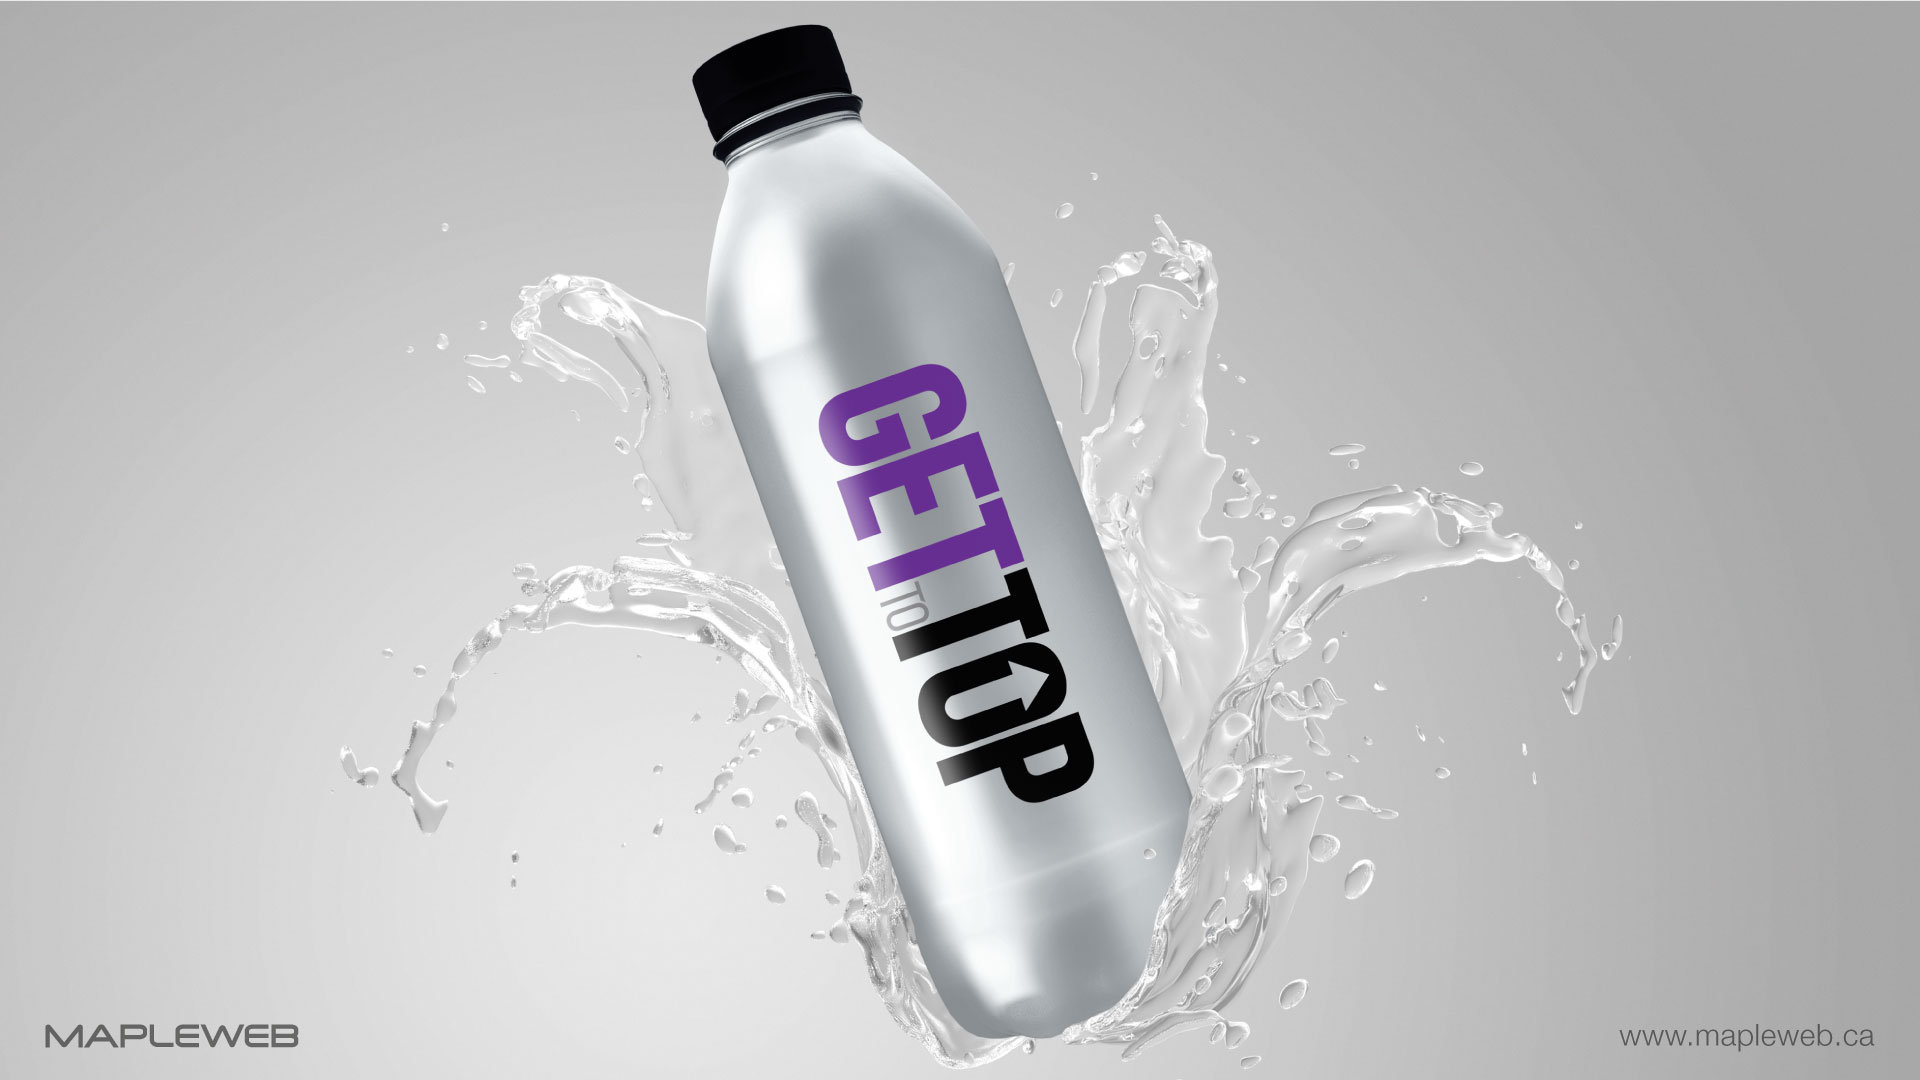 gettotop-brand-logo-design-by-mapleweb-vancouver-canada-water-bottle-mock